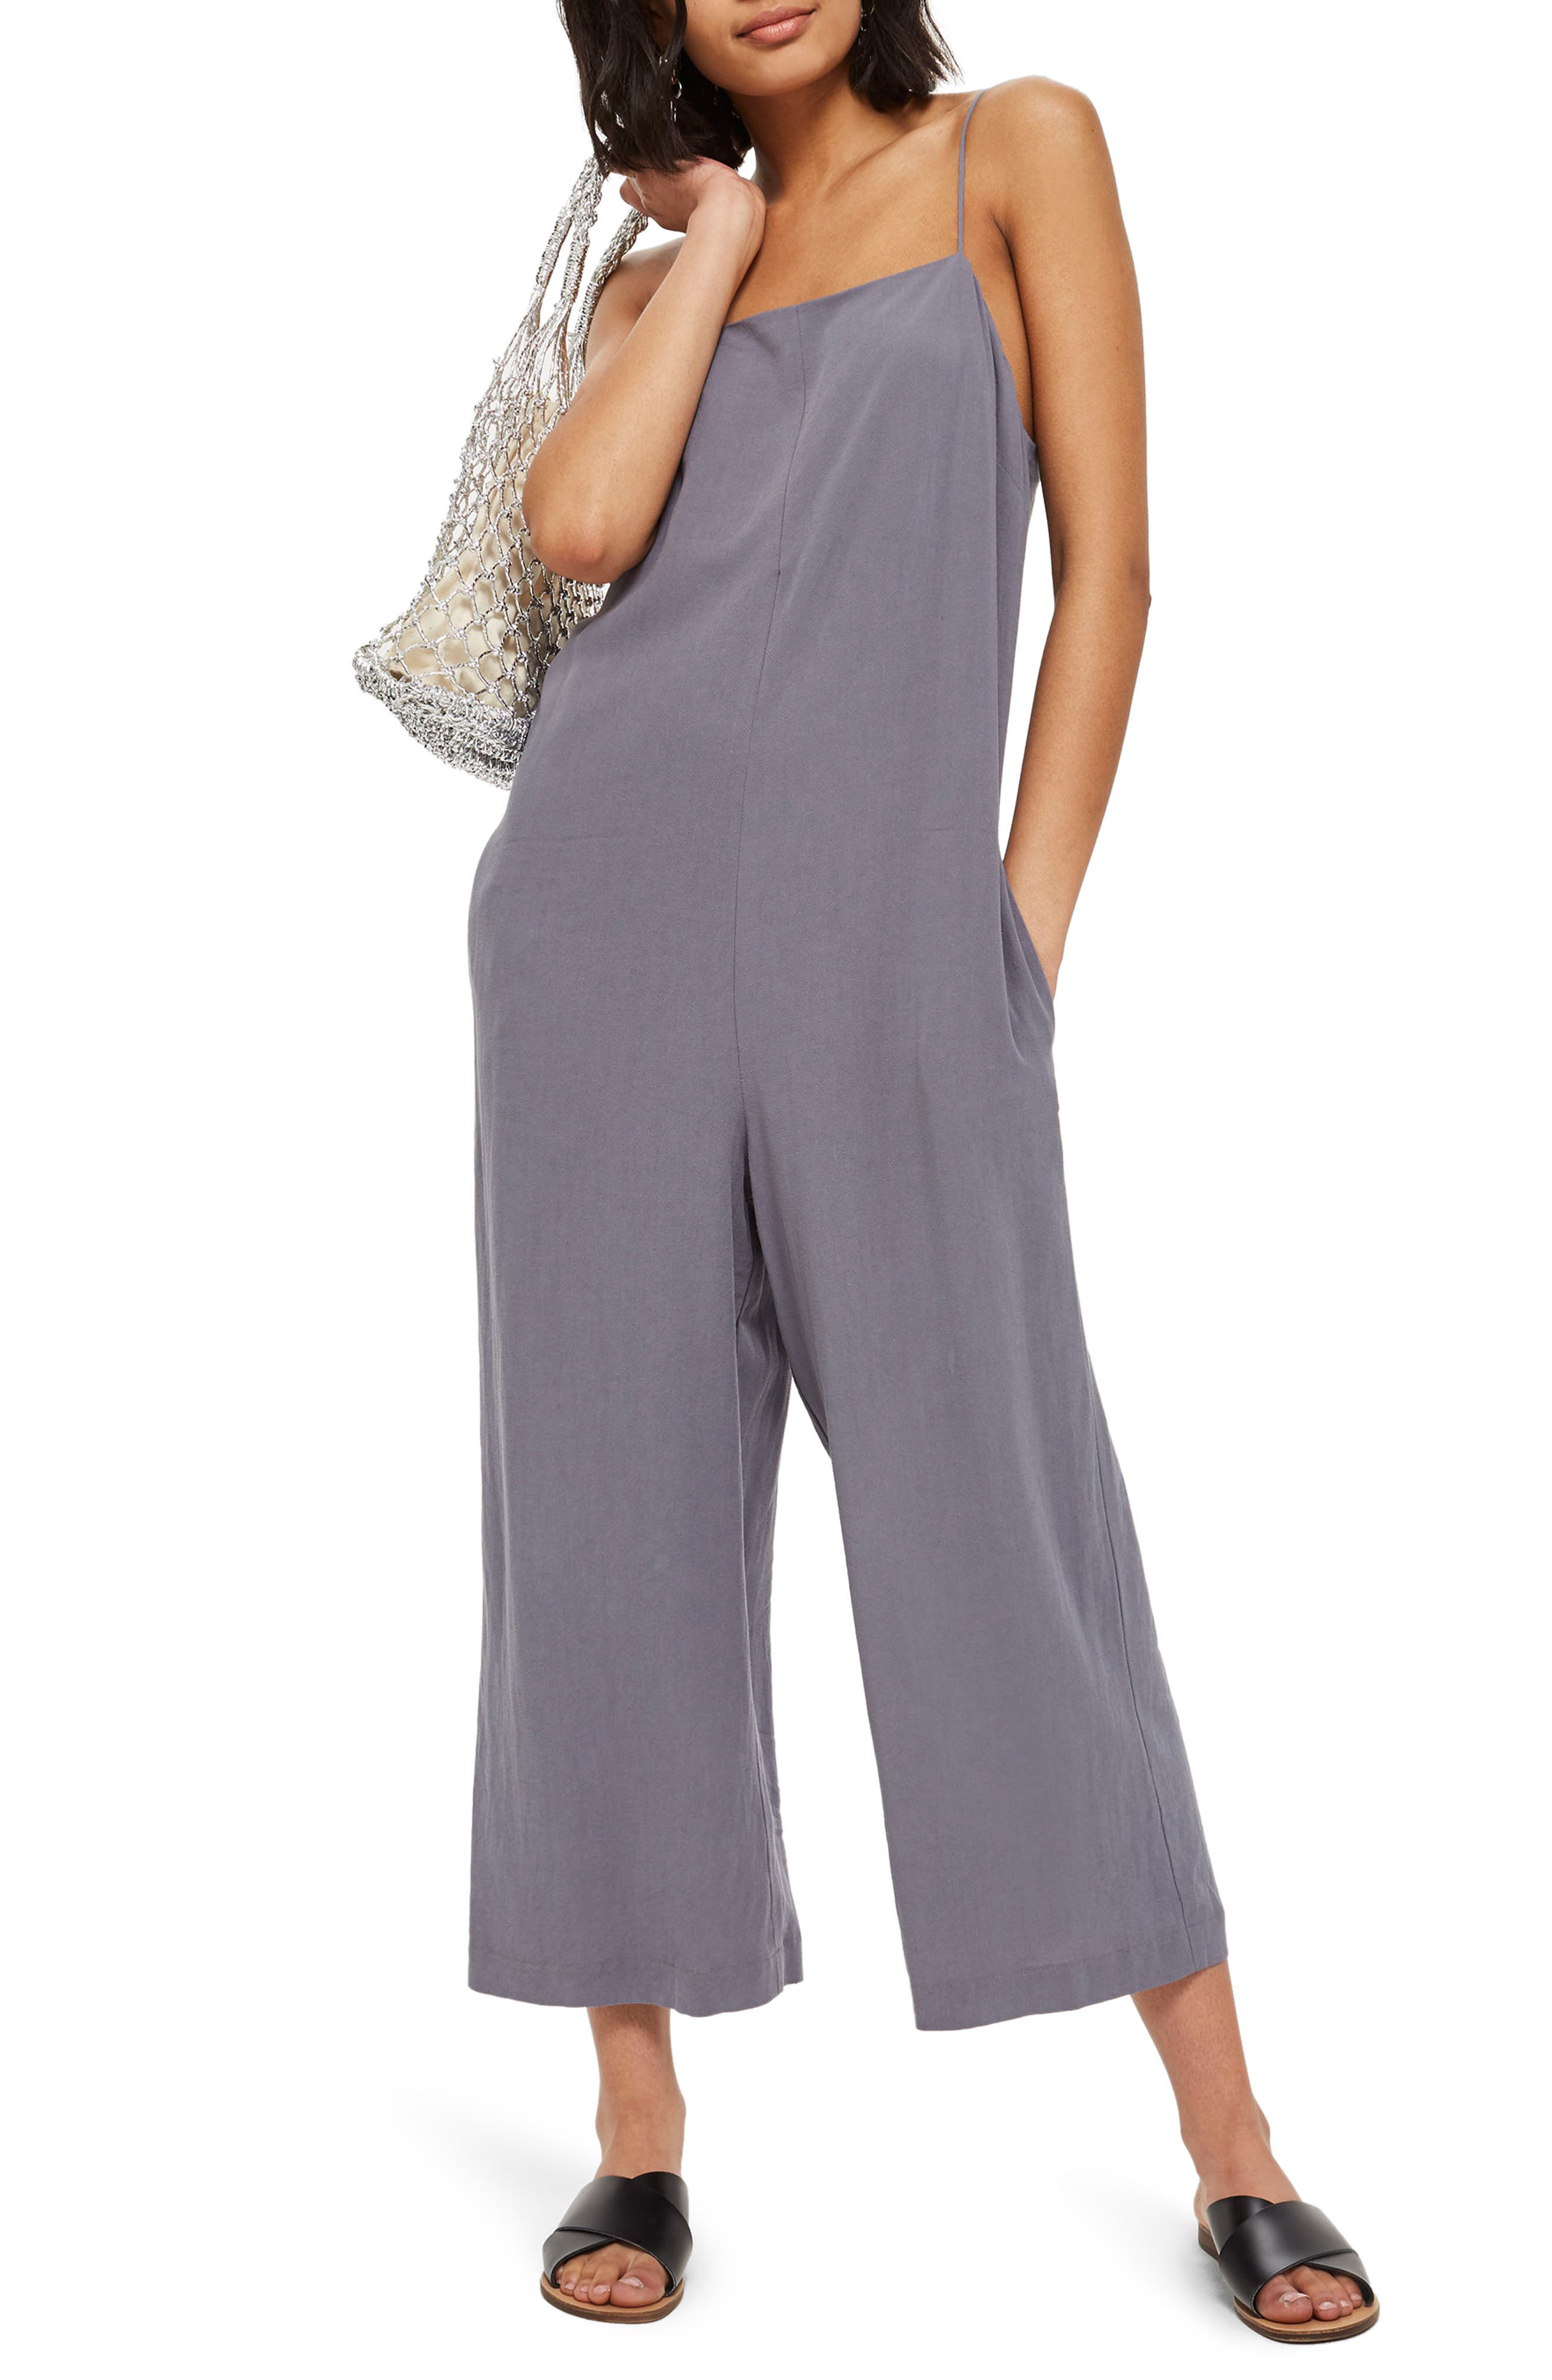 Molly Square Neck Slouch Jumpsuit,                             Main thumbnail 1, color,                             400